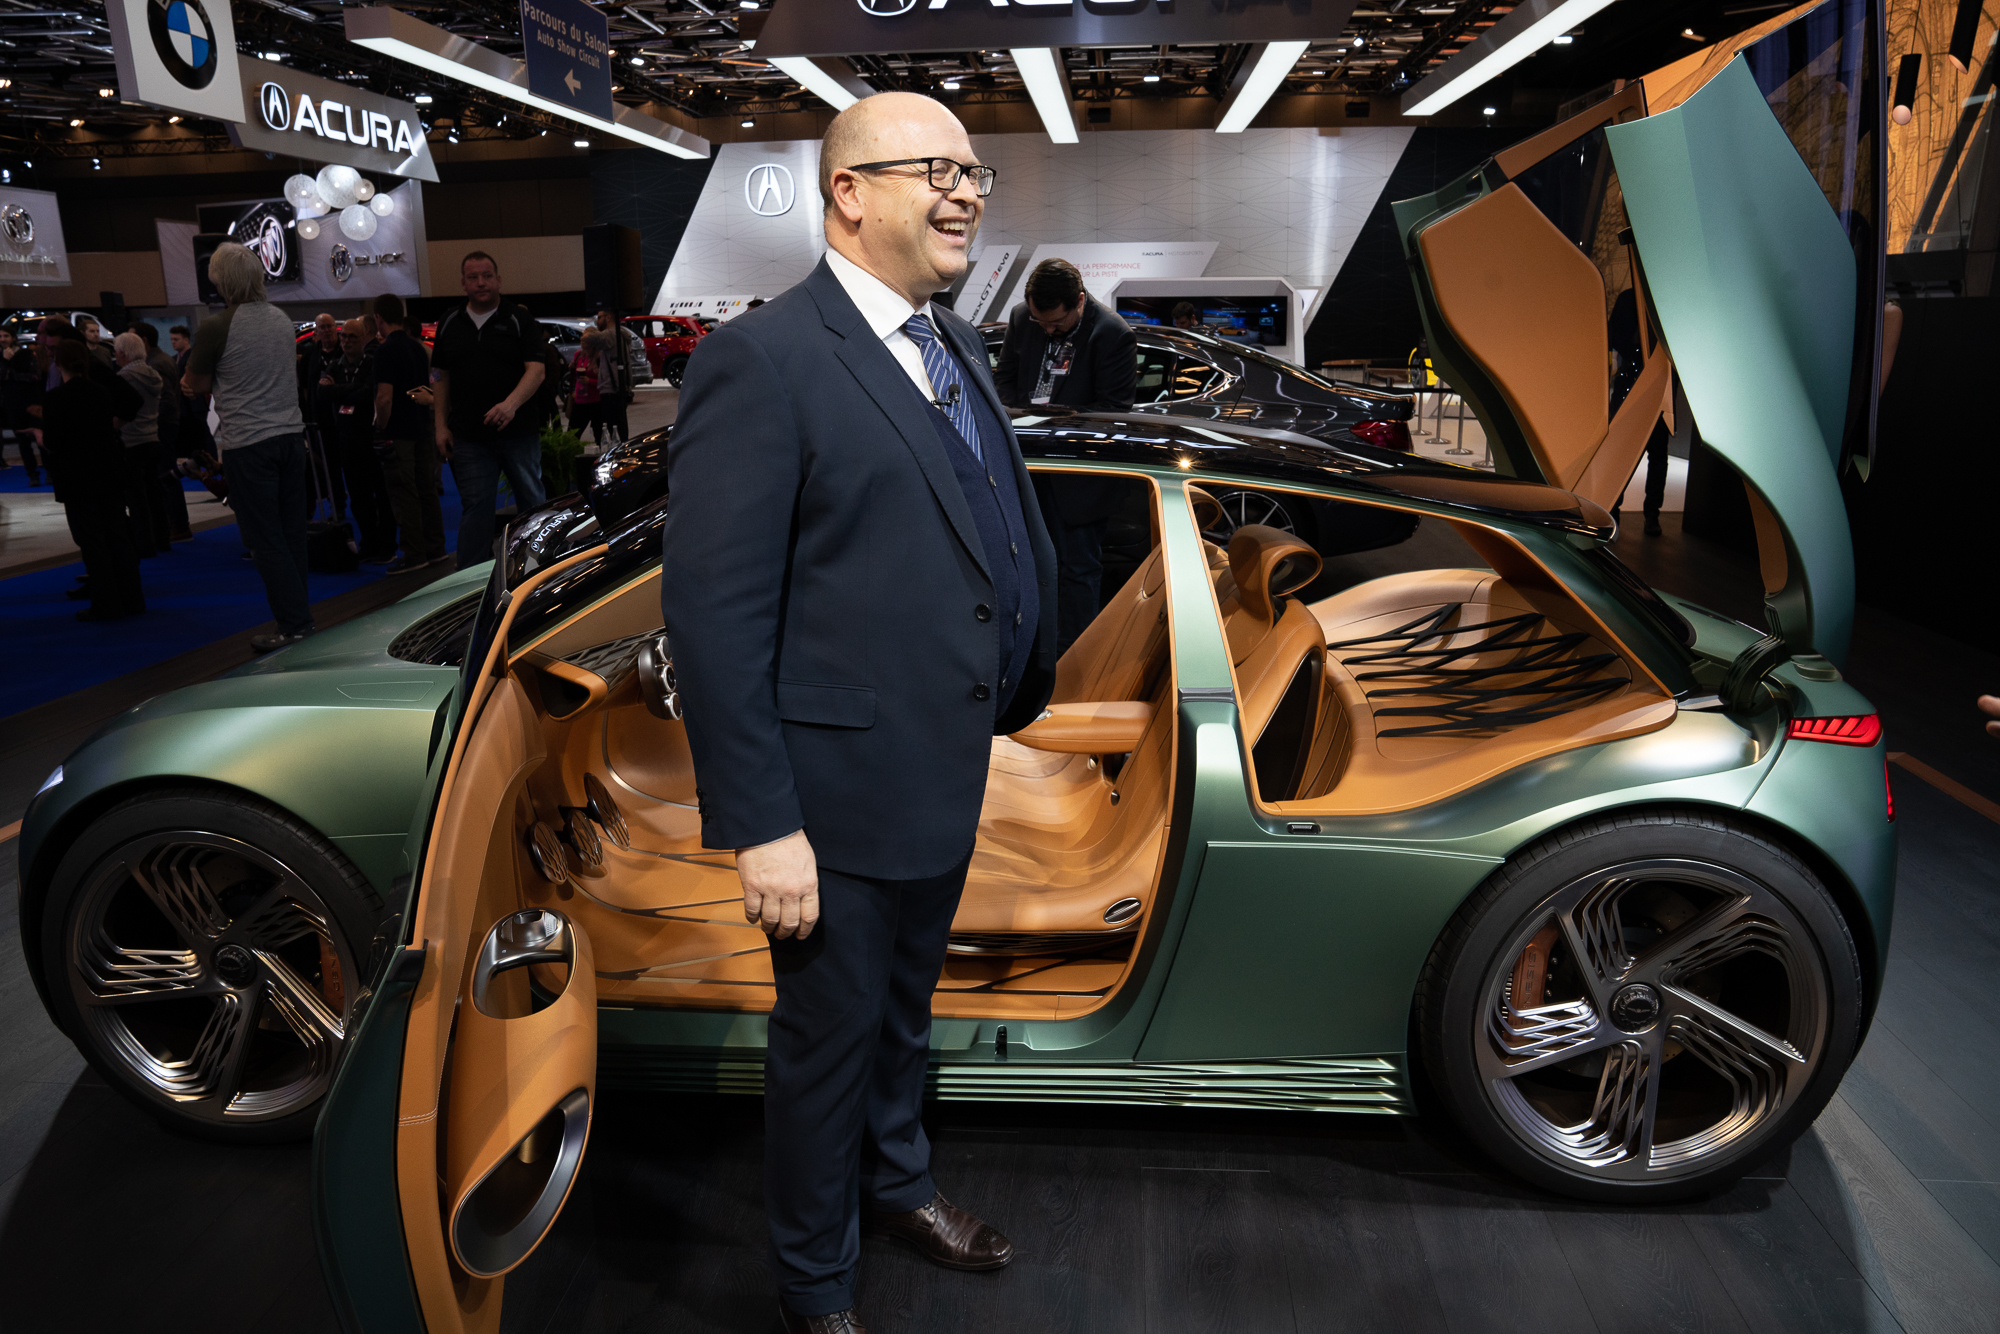 Perini with the Genesis concept car